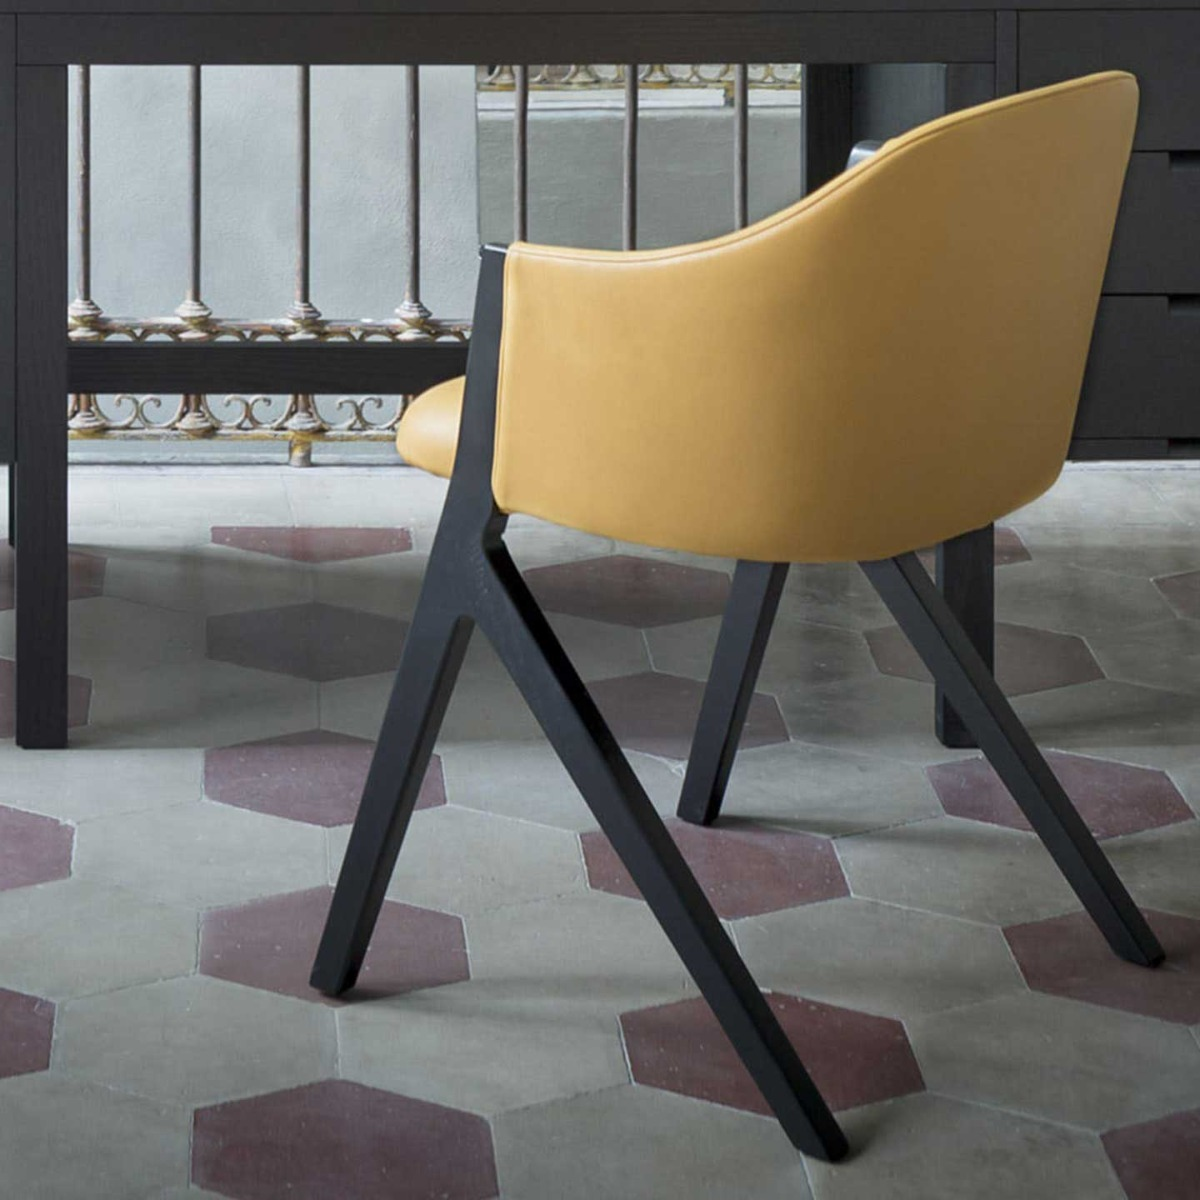 M10 Chair by Patrick Nourguet for Cassina